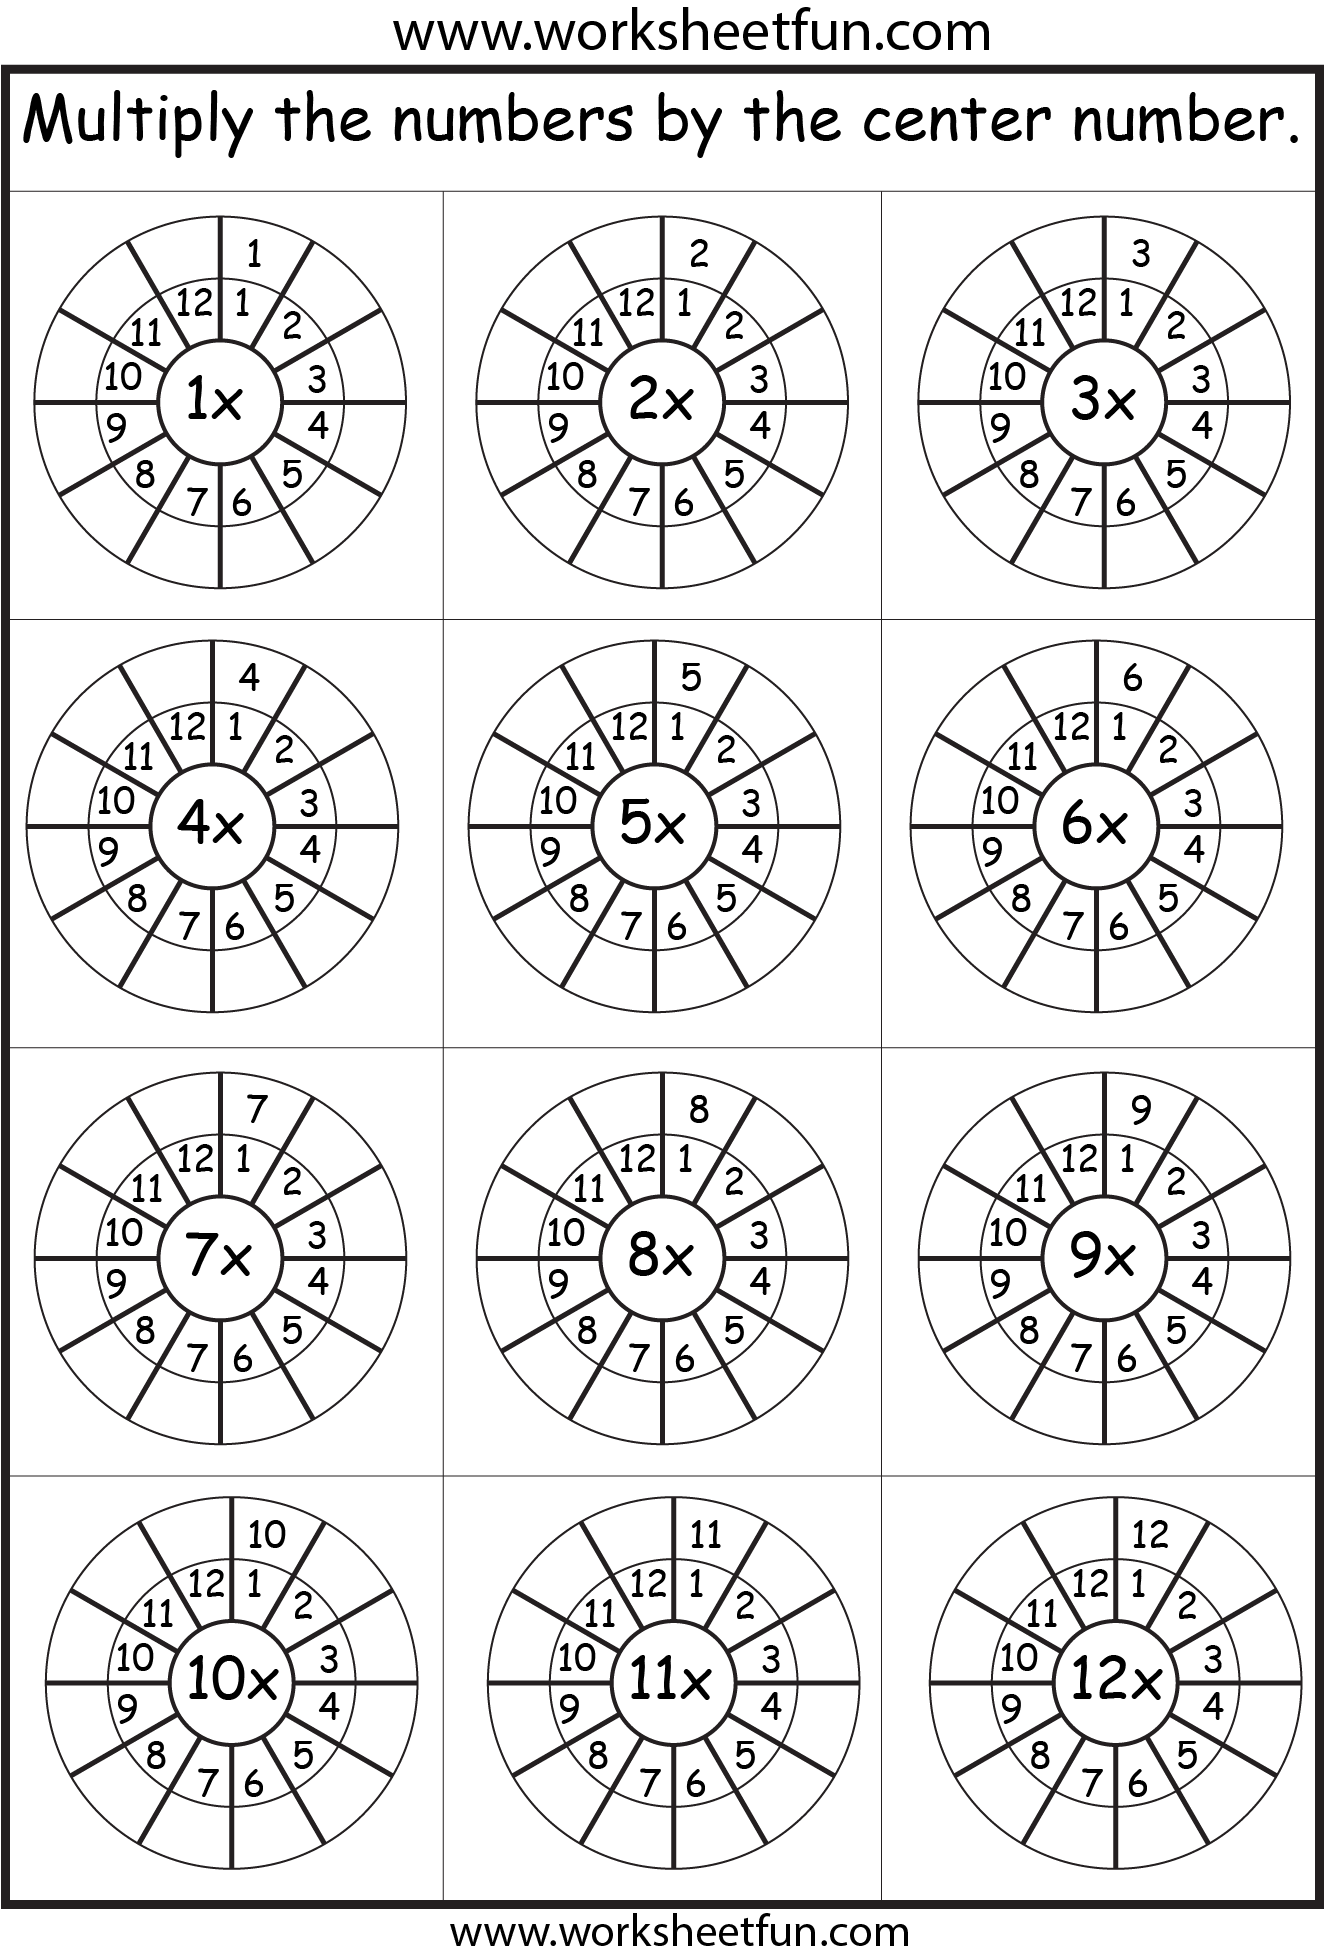 Worksheet Times Tables Fun Worksheets times table 2 12 worksheets 1 3 4 5 6 7 8 9 10 11 table